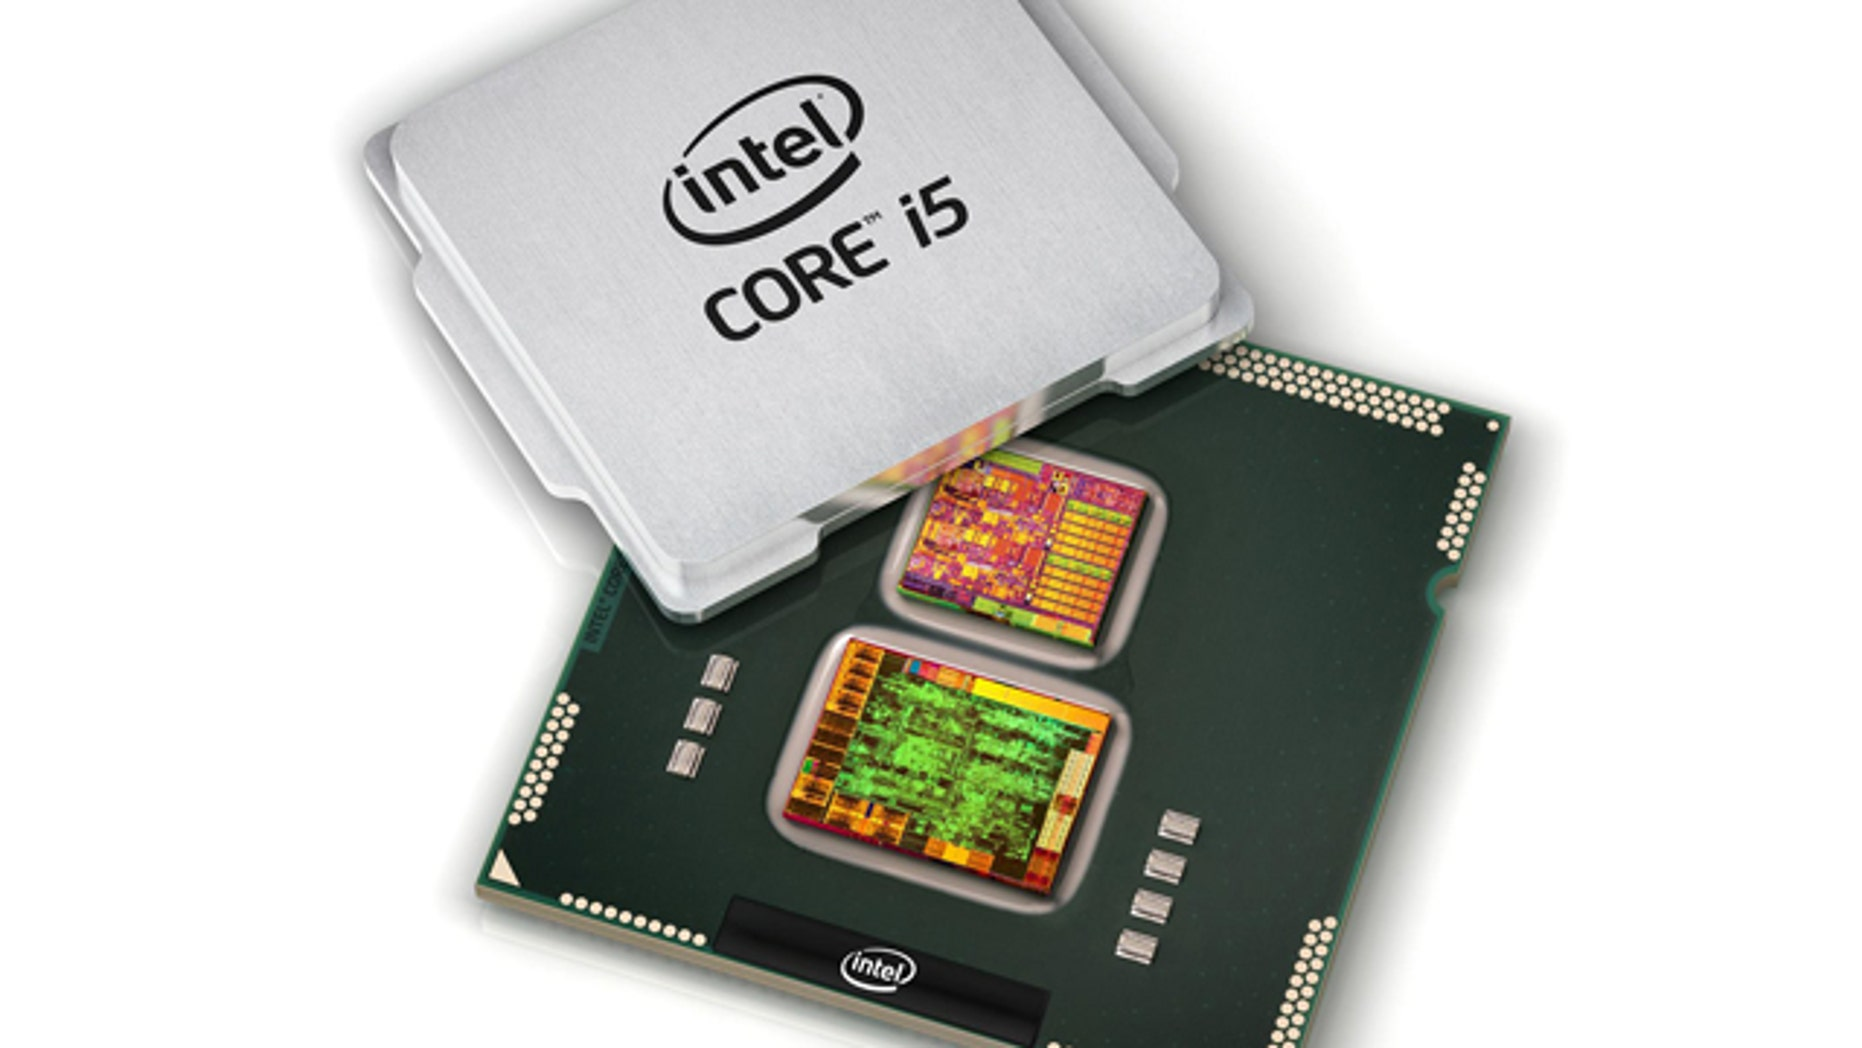 The transistors -- little on/off switches that regulate the flow of electric current -- in Intel's newest CPUs are so small that 60 million could fit onto the head of a pin.